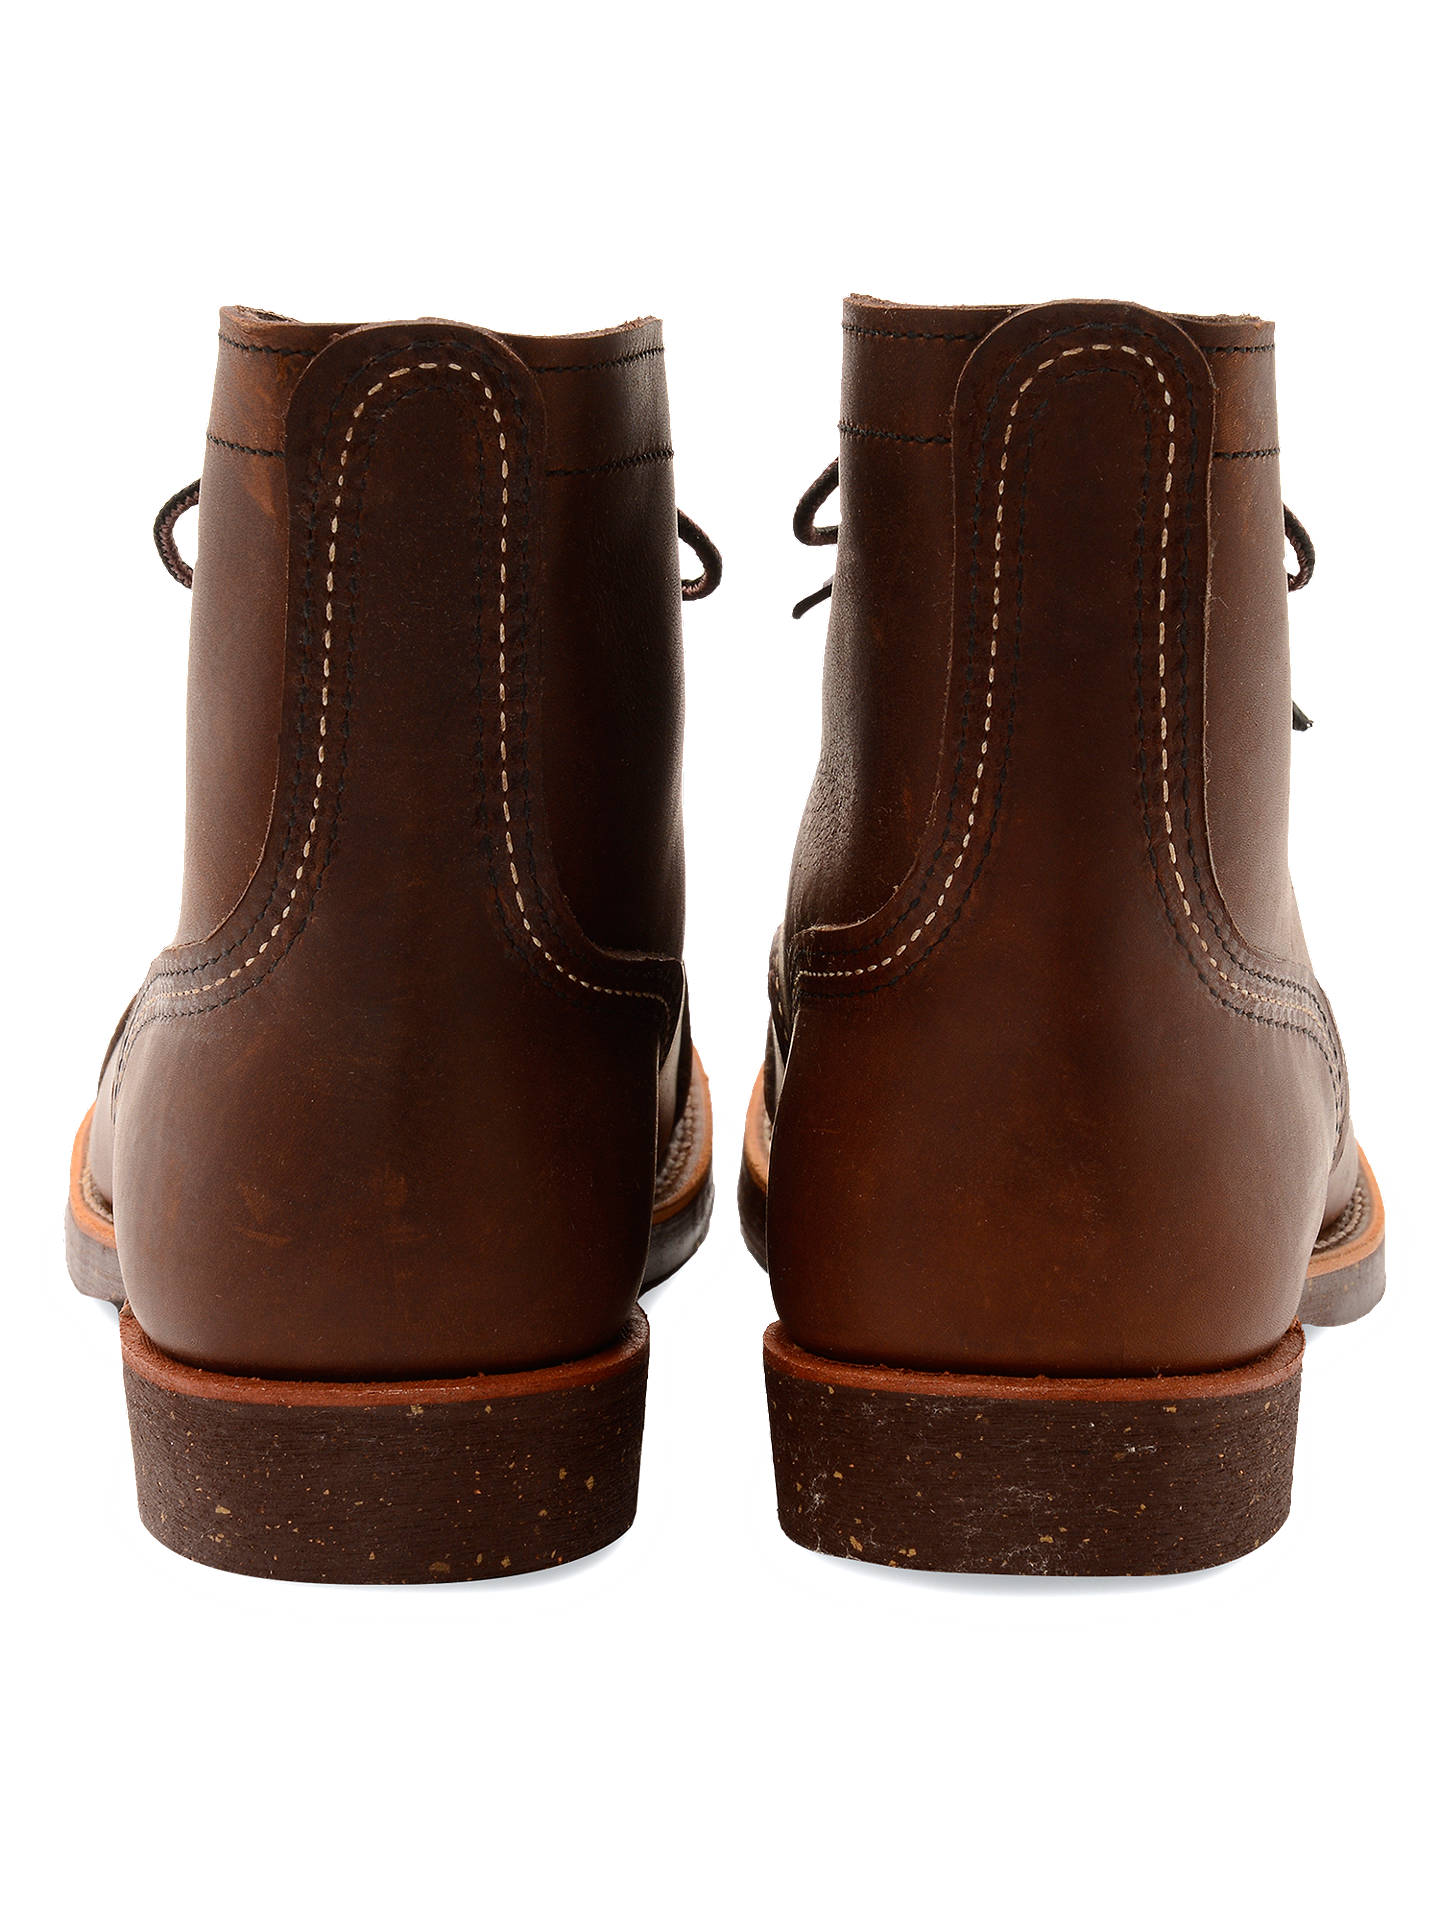 BuyRed Wing 8111 Iron Ranger Boots, Amber Harness, 7 Online at johnlewis.com